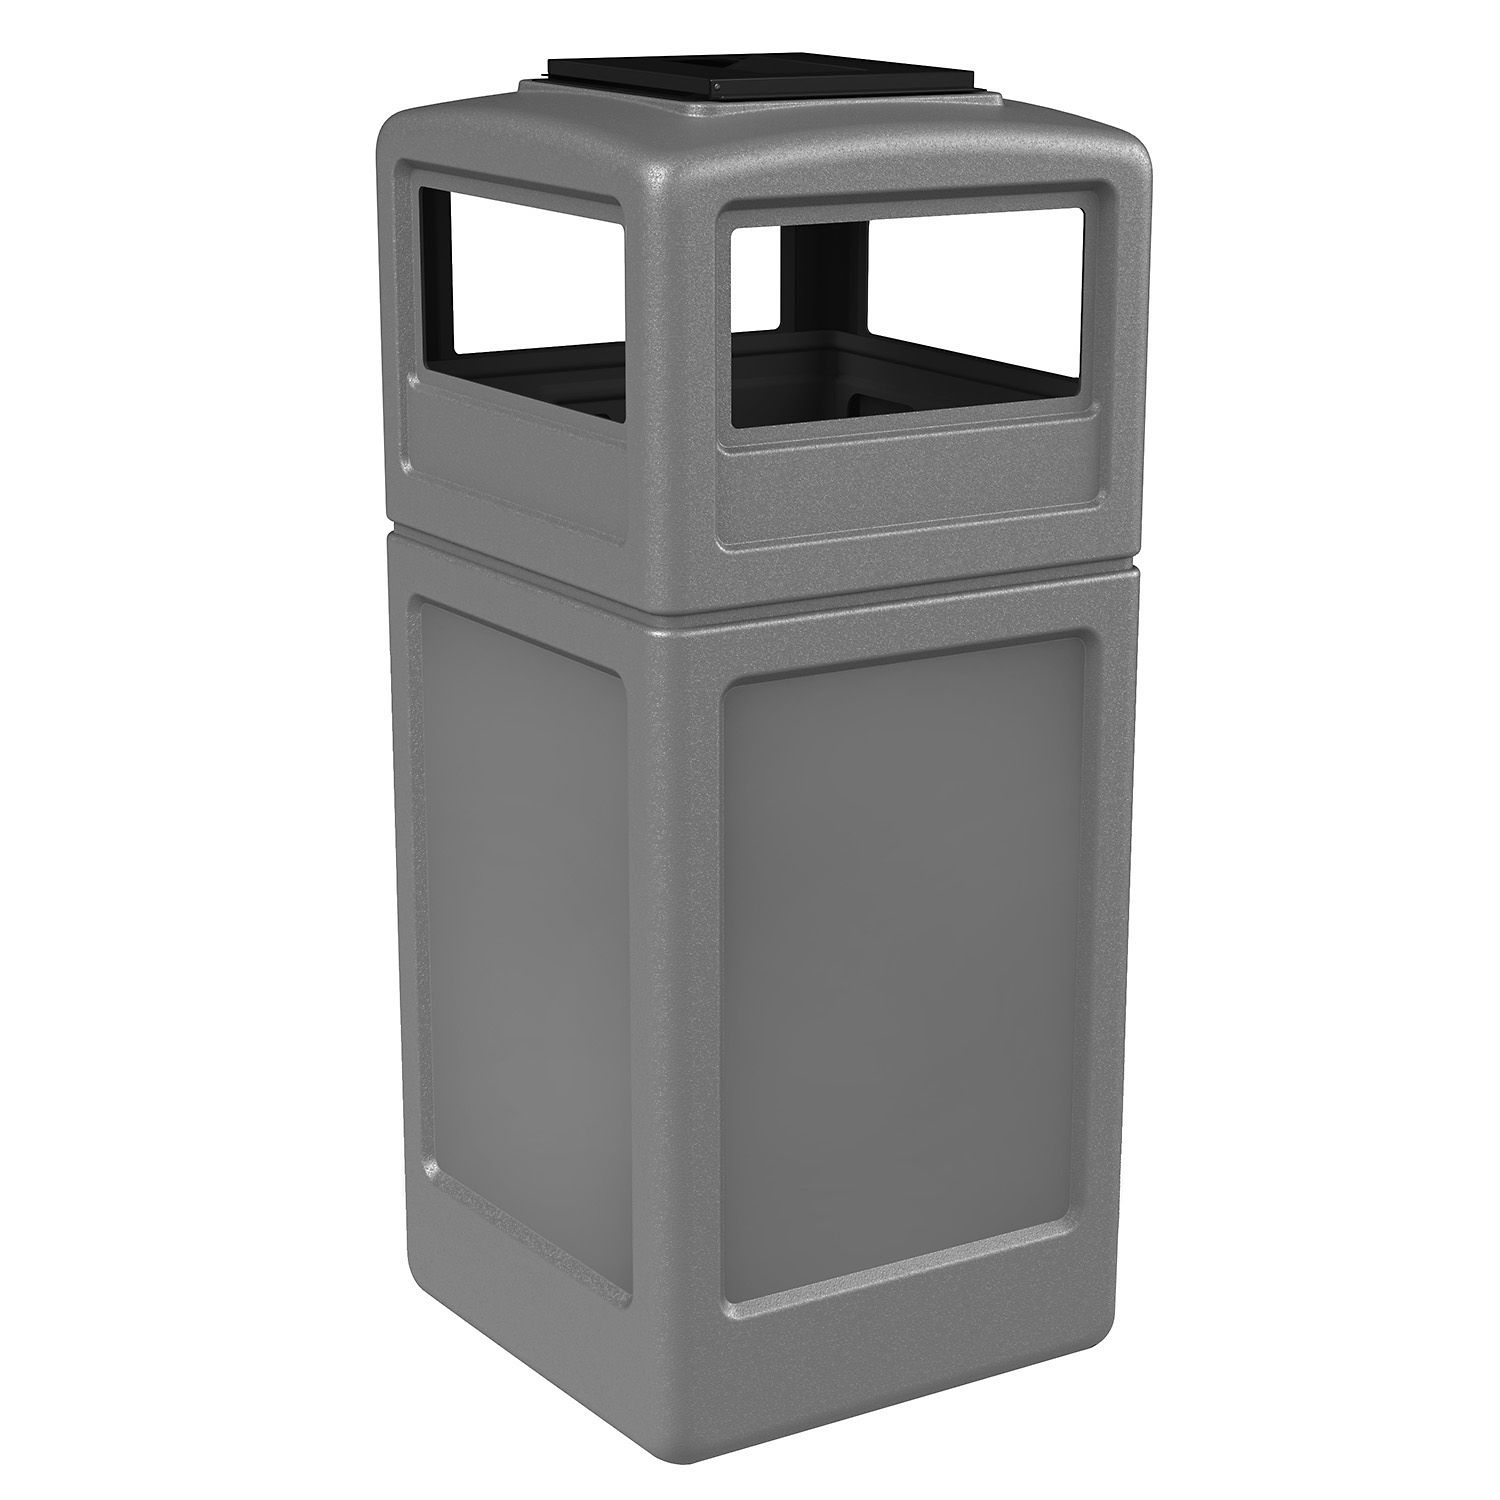 42 Gallon Square Waste Container with Ashtray Dome Lid Color: Gray